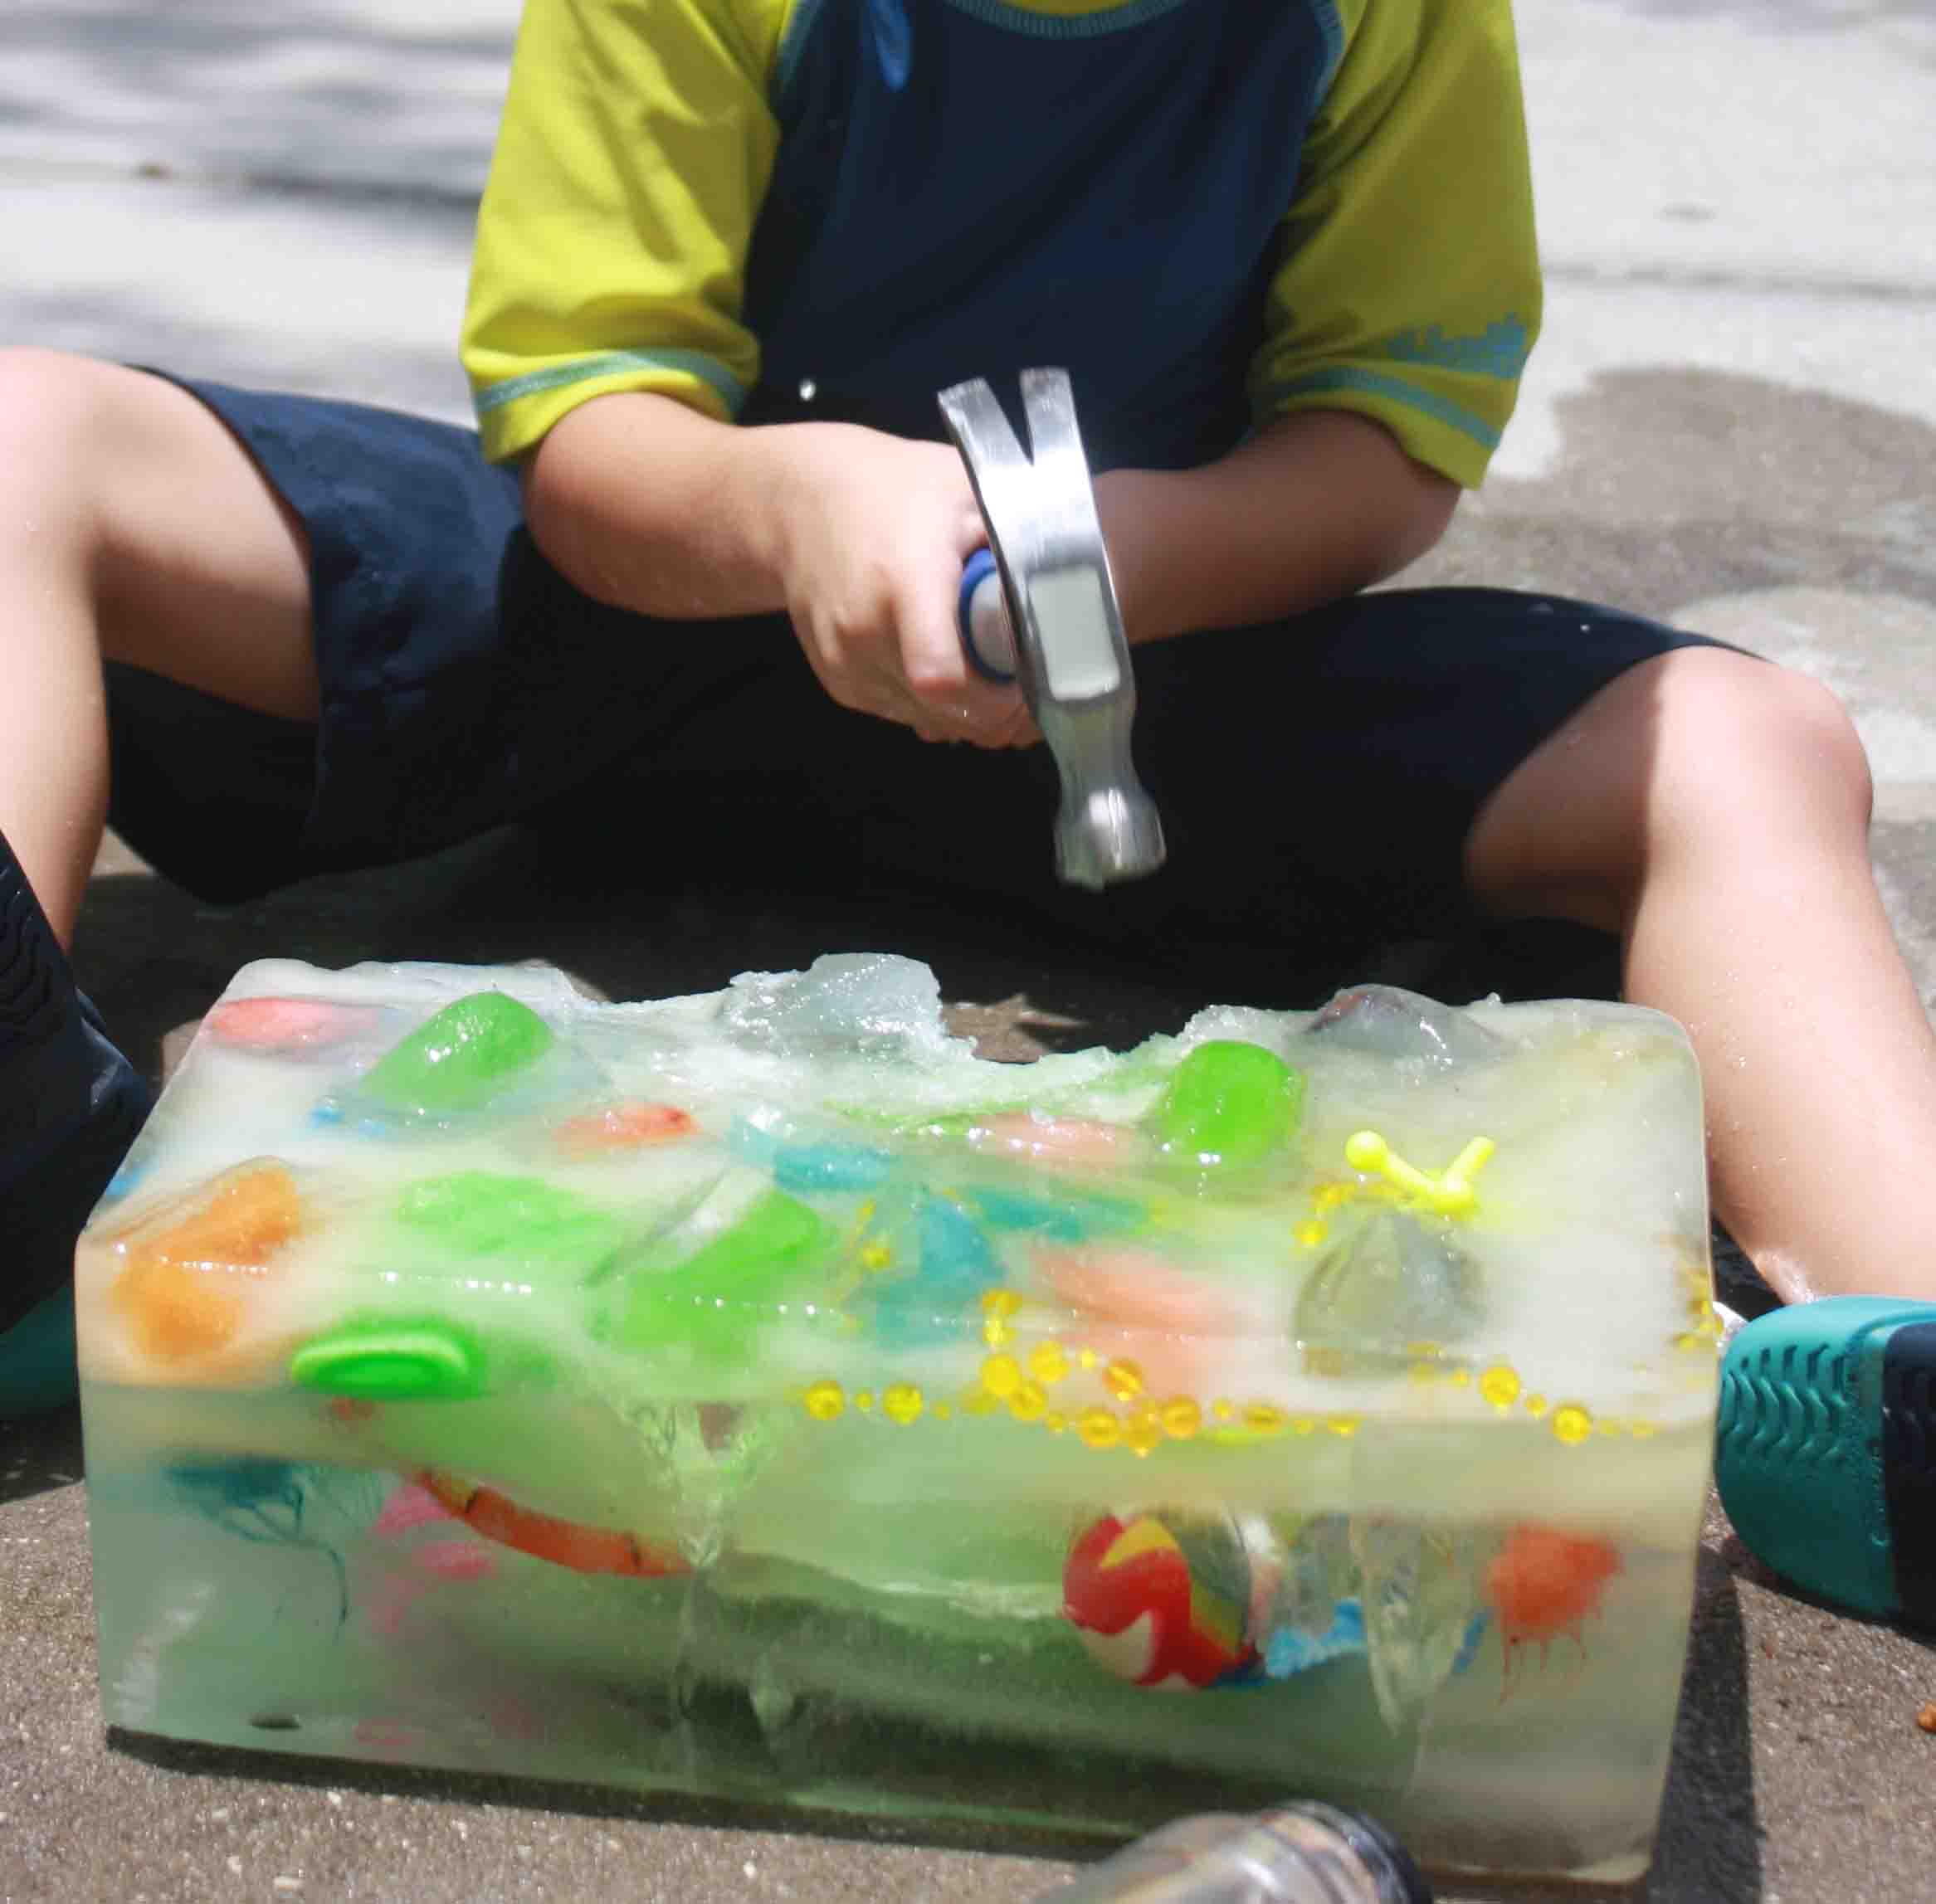 Keep them busy in the summer with this DIY ice block idea